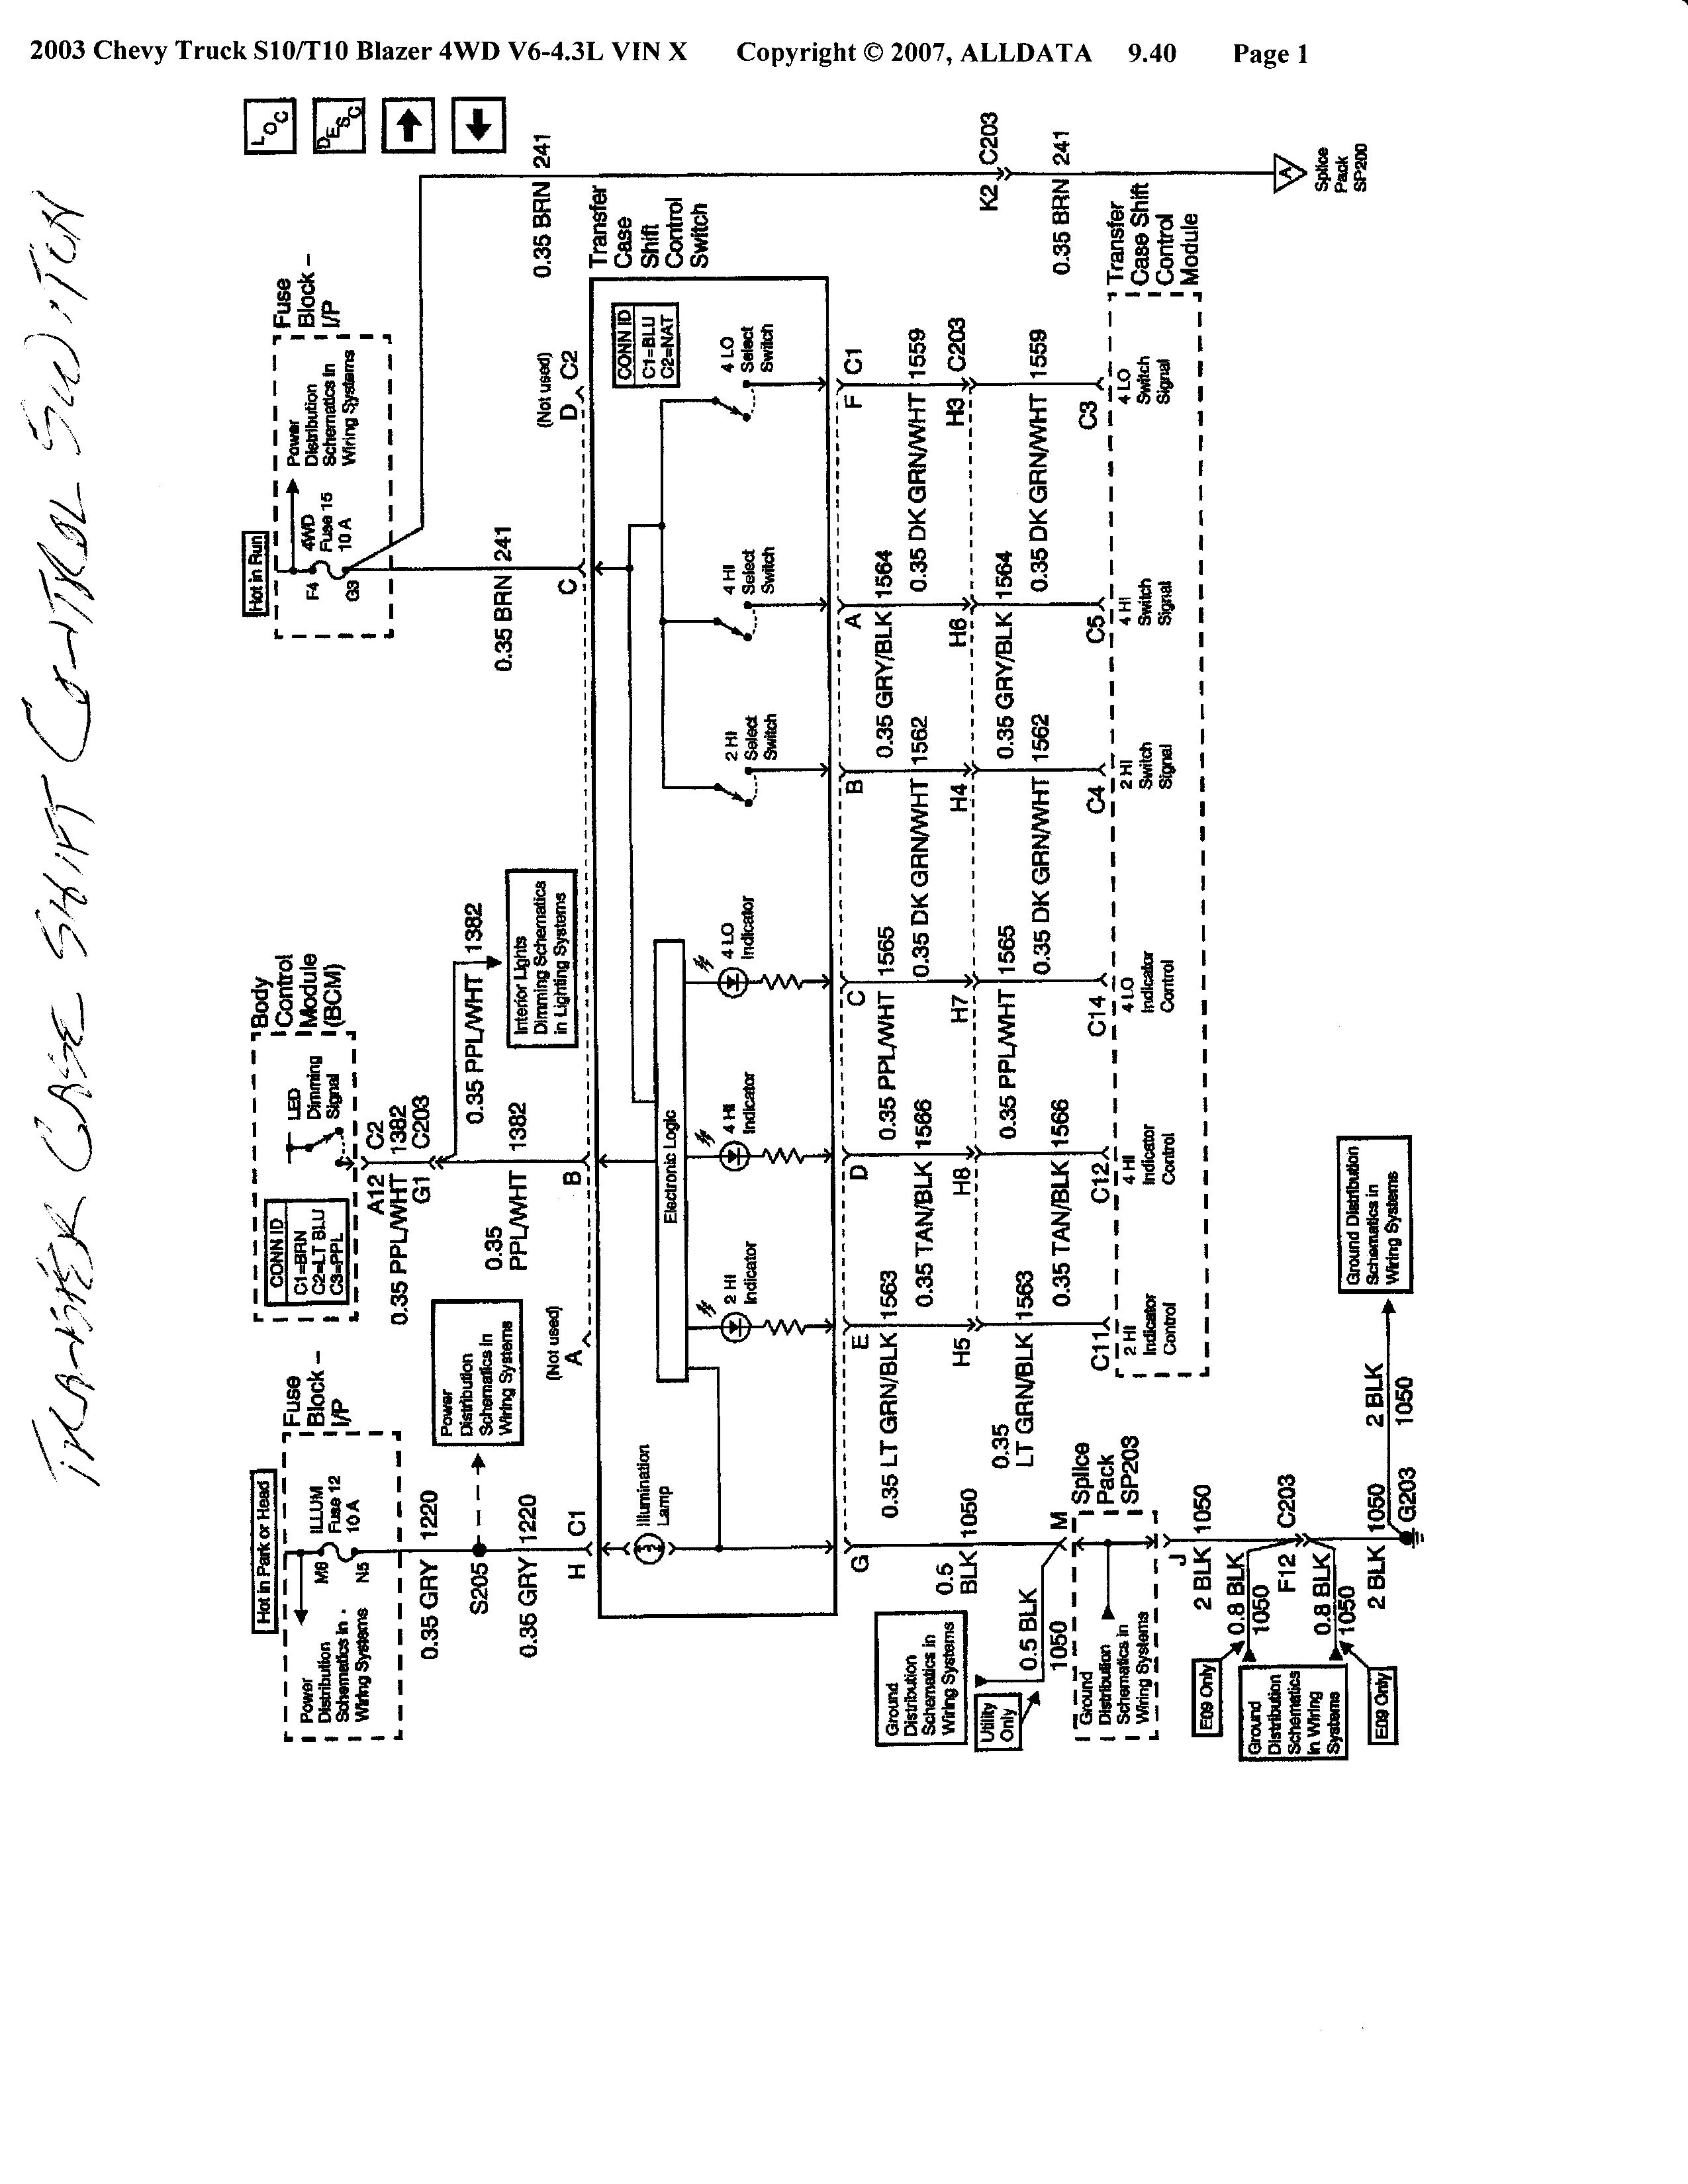 s10 4x4 wiring diagram wiring diagram explaineds10 encoder motor wiring diagram wiring diagram third level 1989 s10 wiring diagram 2001 s10 4x4